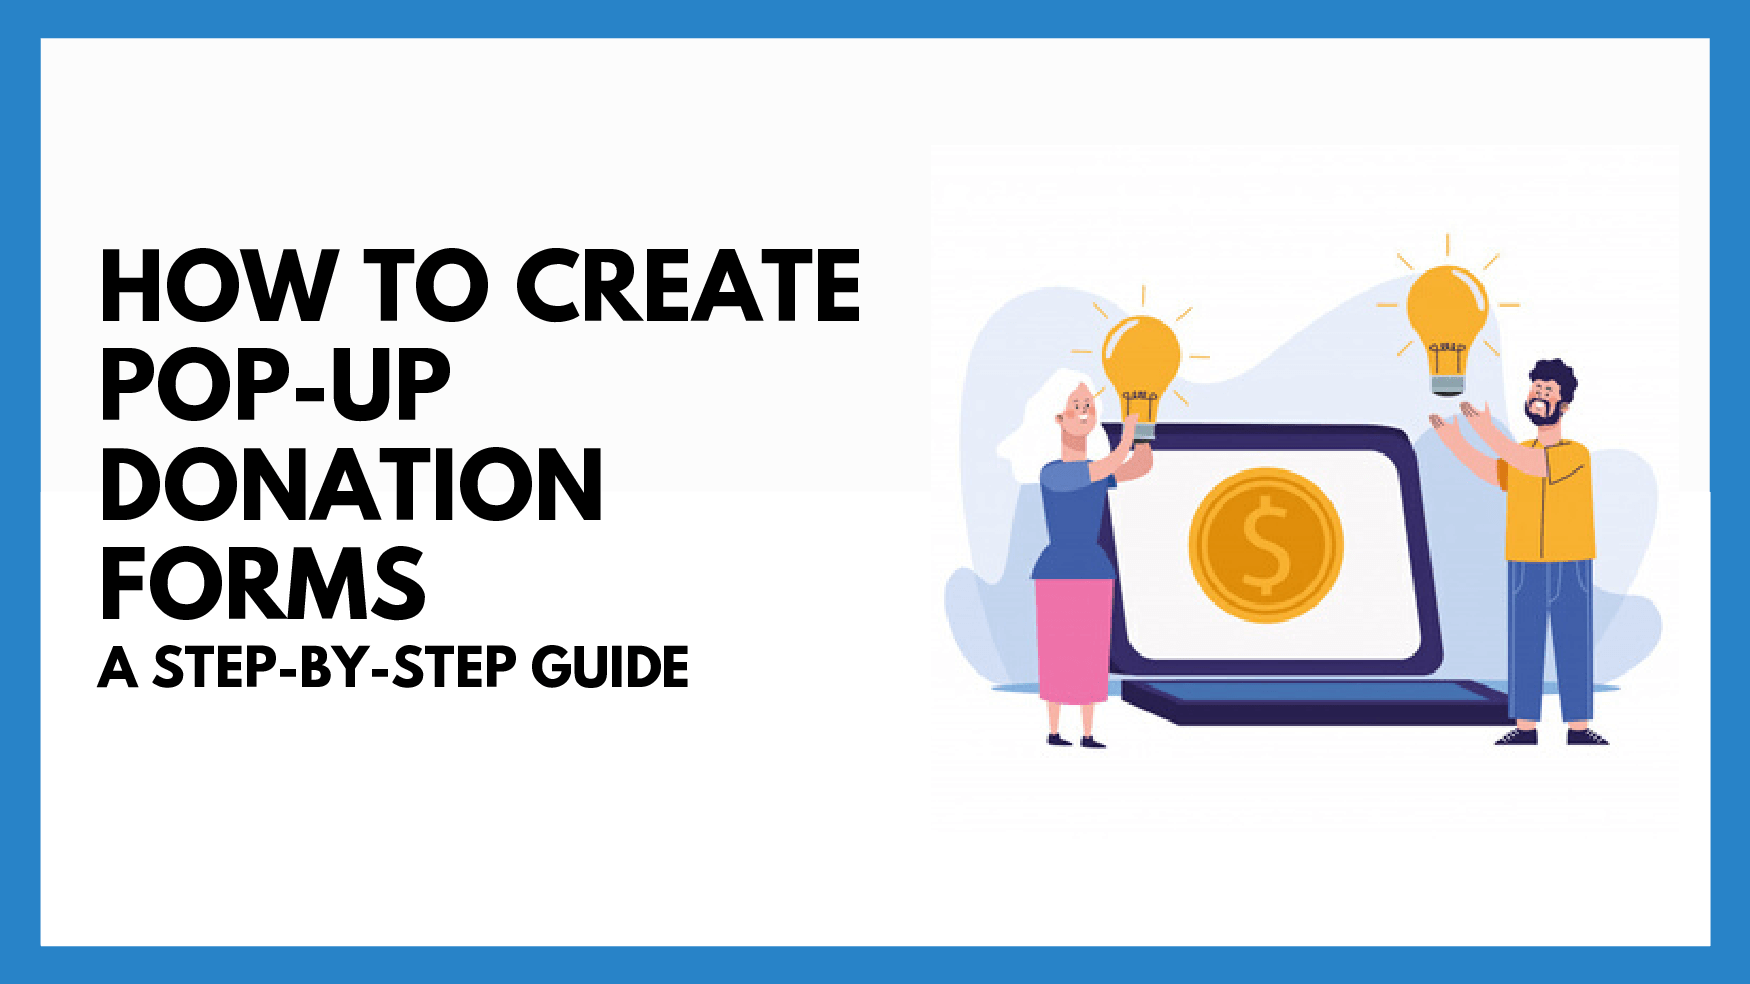 How To Create A Pop-Up Donation Form: Step-by-Step Guide